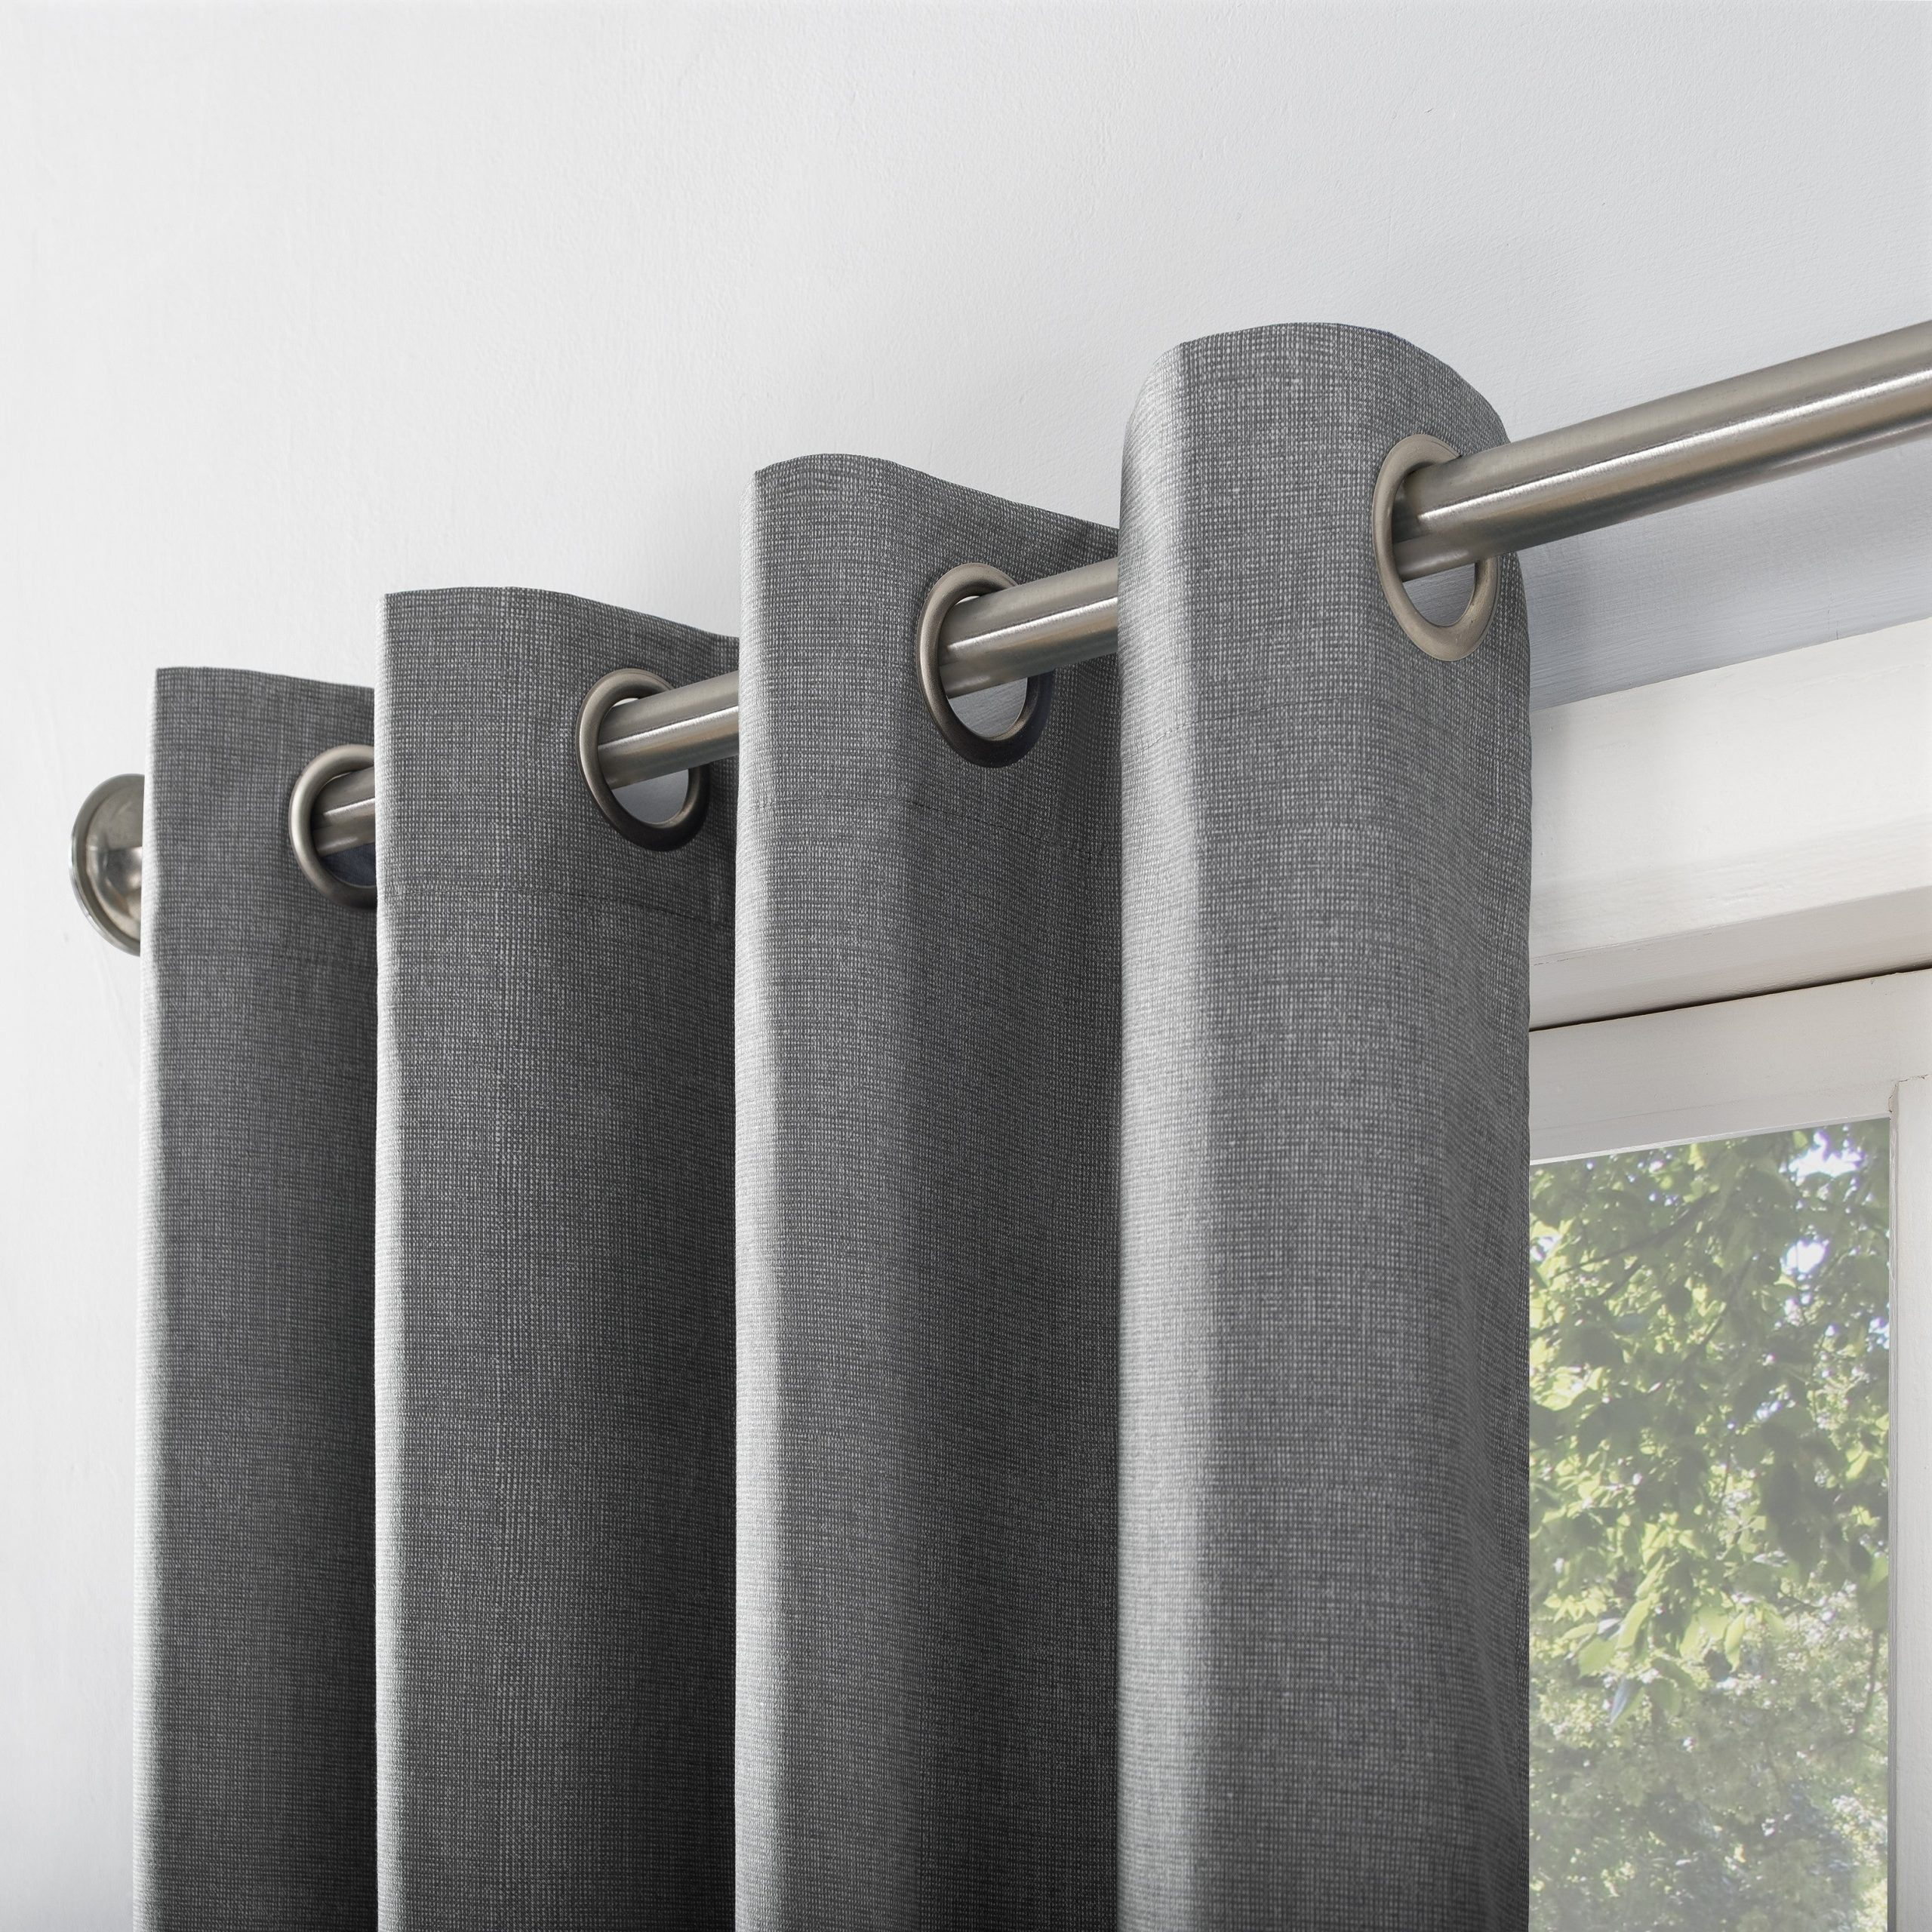 [%Sun Zero Duran Thermal Insulated 100% Blackout Grommet Curtain Panel Inside Preferred Duran Thermal Insulated Blackout Grommet Curtain Panels|Duran Thermal Insulated Blackout Grommet Curtain Panels Pertaining To Famous Sun Zero Duran Thermal Insulated 100% Blackout Grommet Curtain Panel|Most Recent Duran Thermal Insulated Blackout Grommet Curtain Panels Inside Sun Zero Duran Thermal Insulated 100% Blackout Grommet Curtain Panel|Best And Newest Sun Zero Duran Thermal Insulated 100% Blackout Grommet Curtain Panel With Regard To Duran Thermal Insulated Blackout Grommet Curtain Panels%] (View 7 of 21)